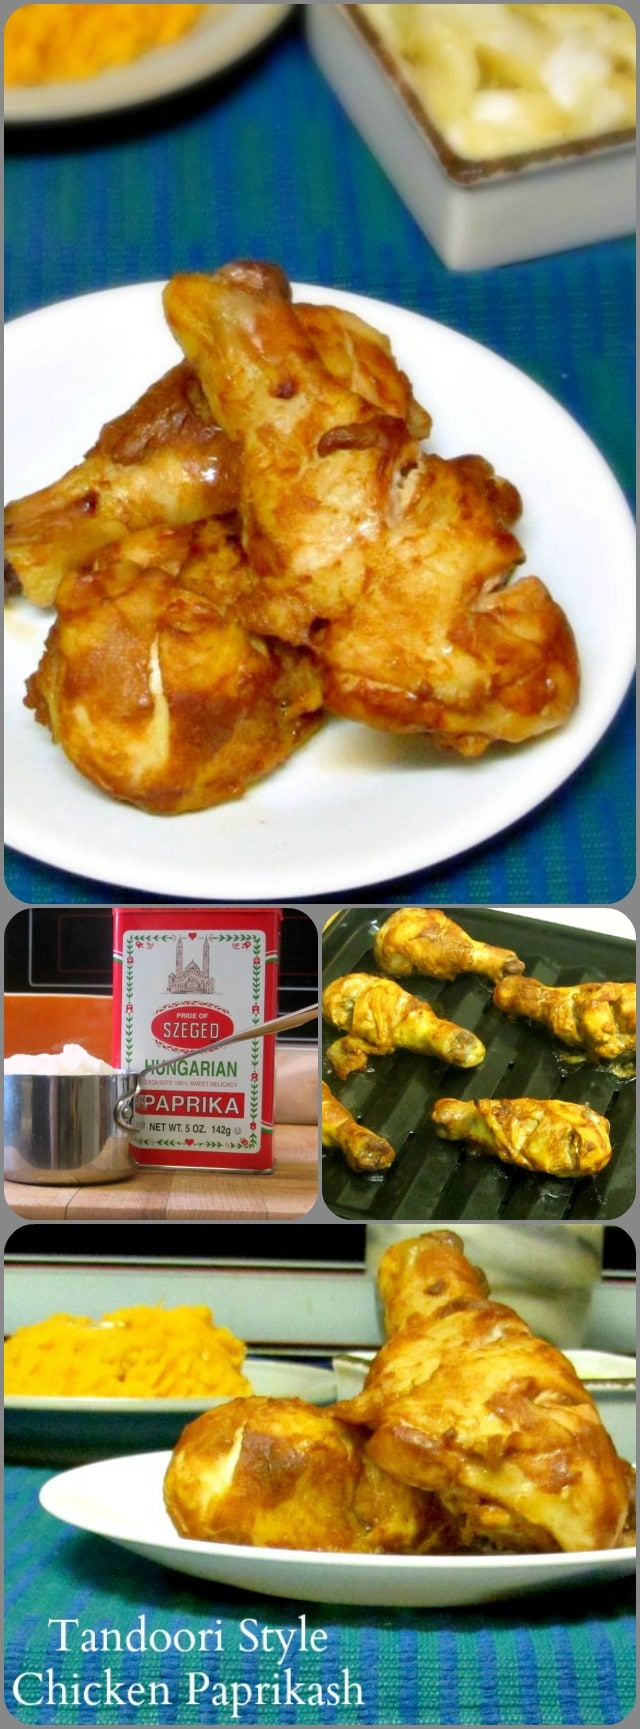 Use sweet Hungarian paprika, instead of Indian spices, in a yogurt marinade for drumsticks, then cook the meat as if you were making tandoori chicken.